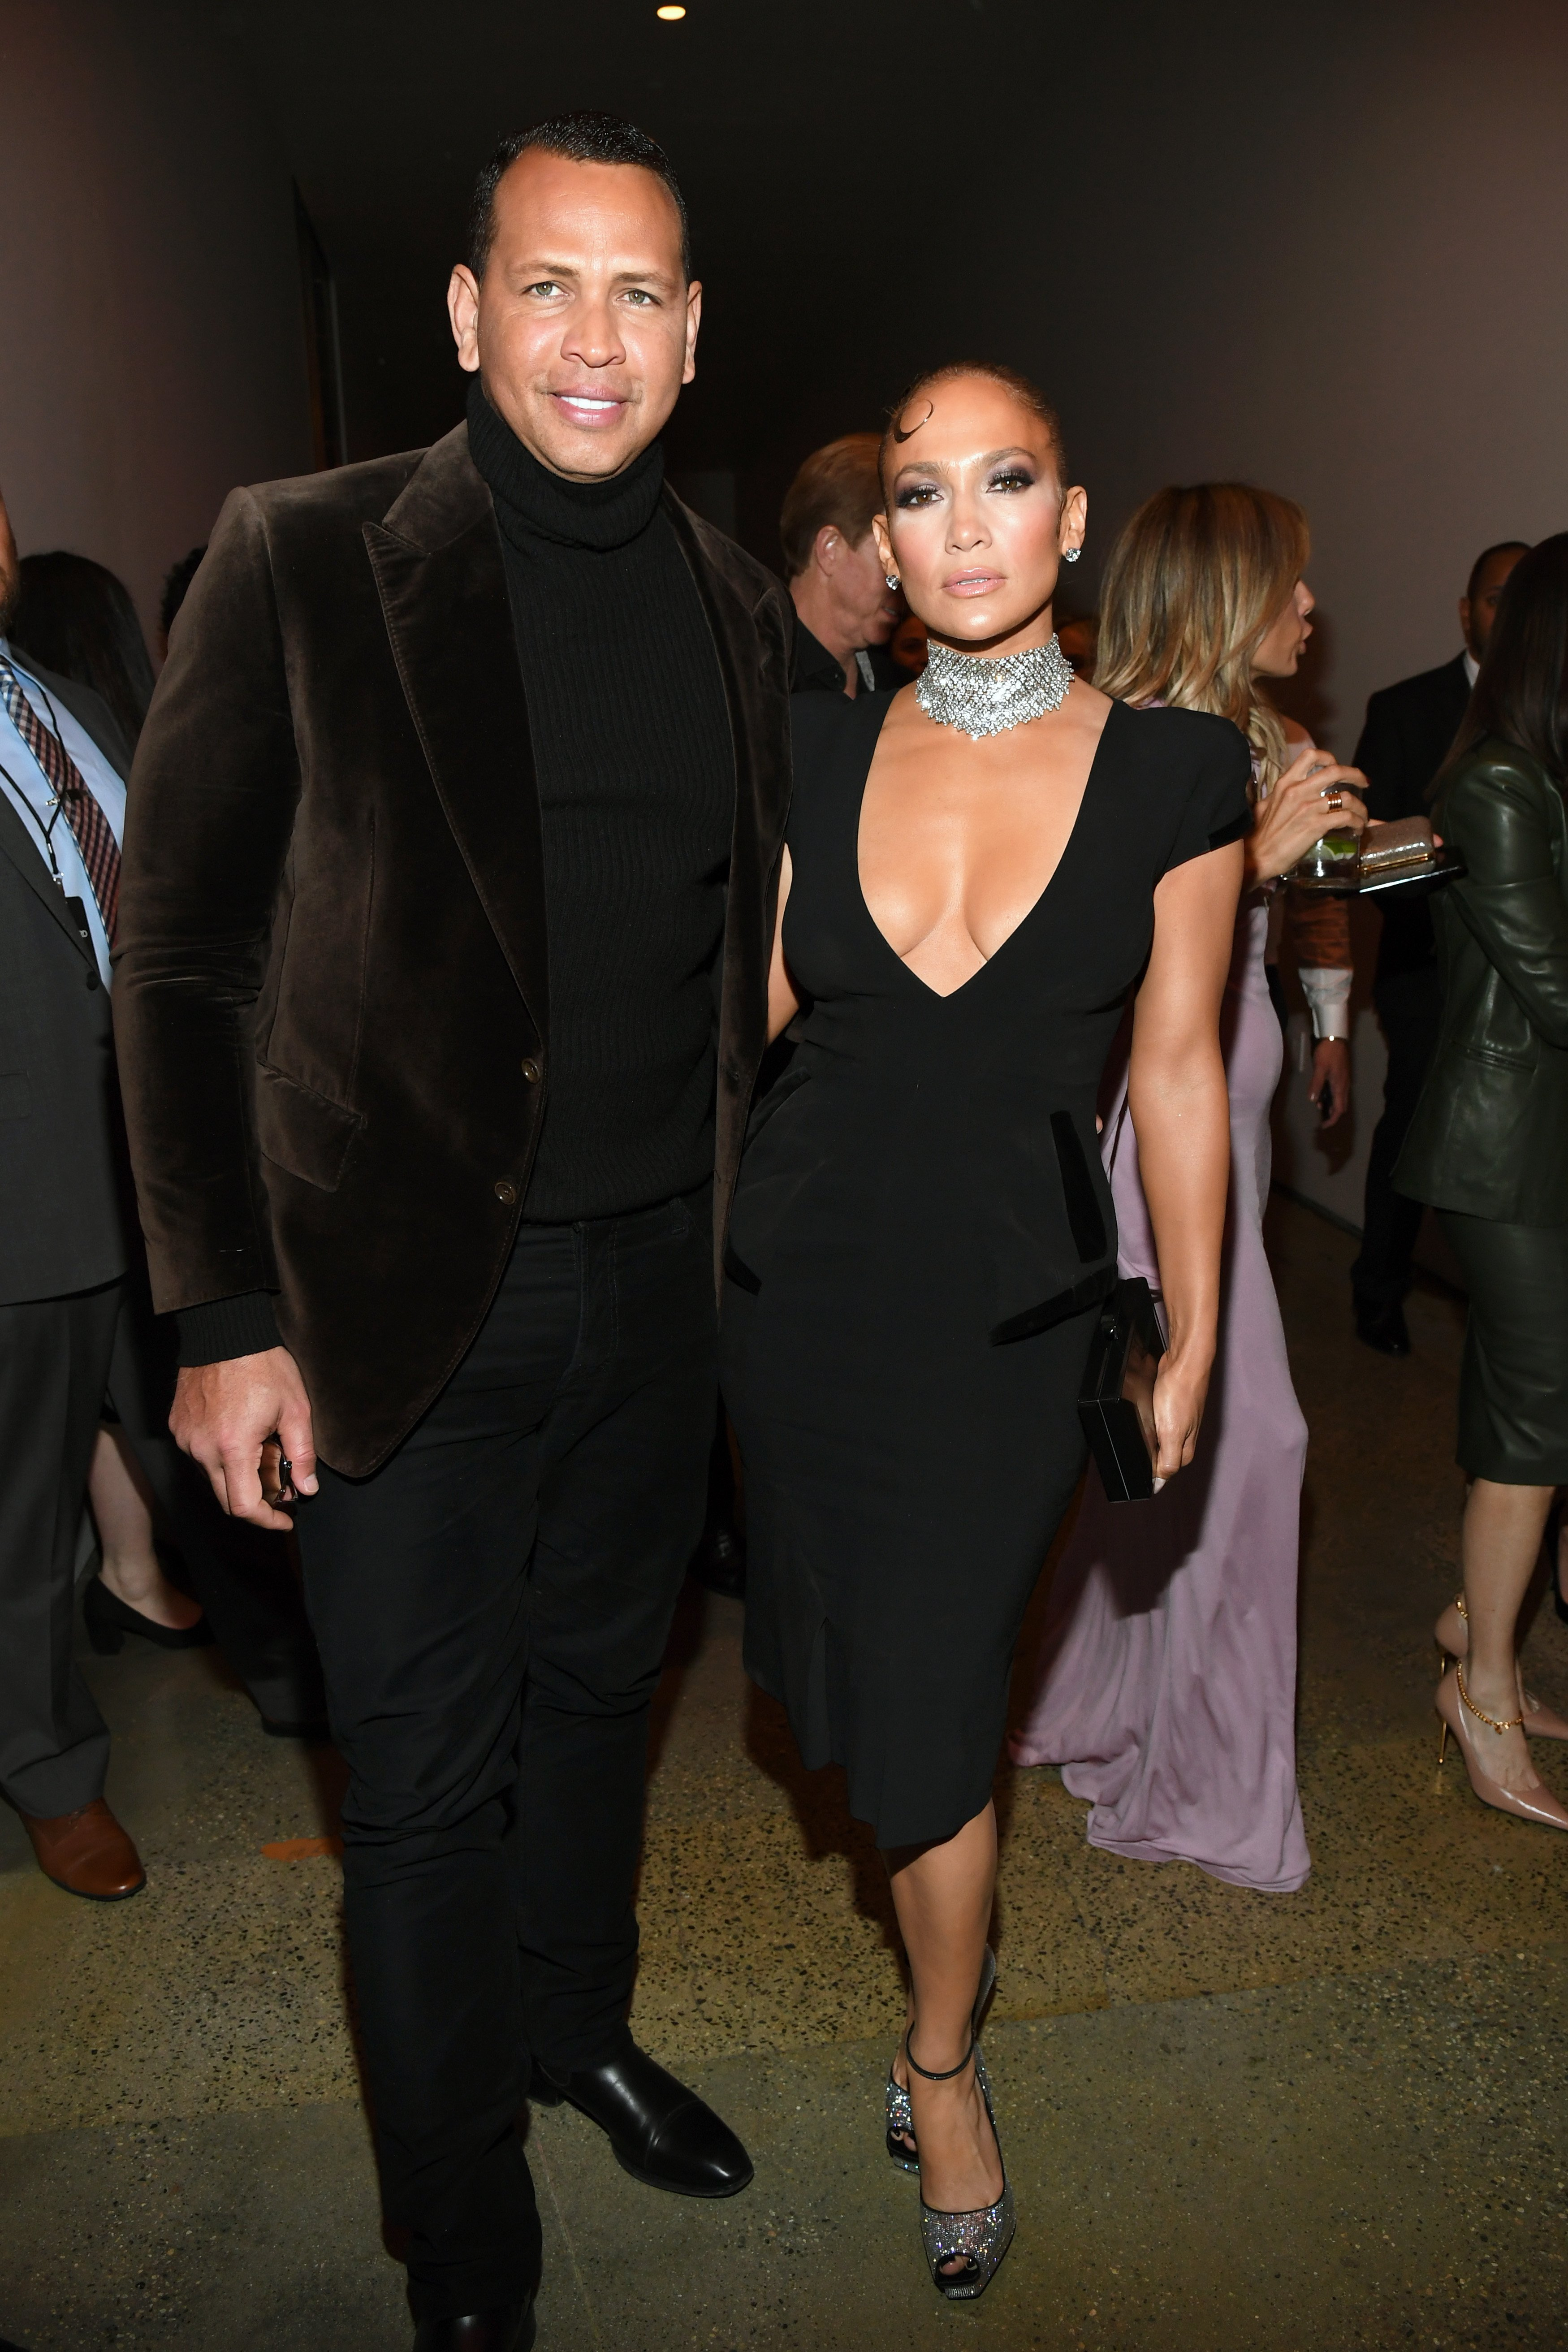 Alex Rodriguez and Jennifer Lopez attend the Tom Ford AW20 Show at Milk Studios on February 07, 2020, in Hollywood, California. | Source: Getty Images